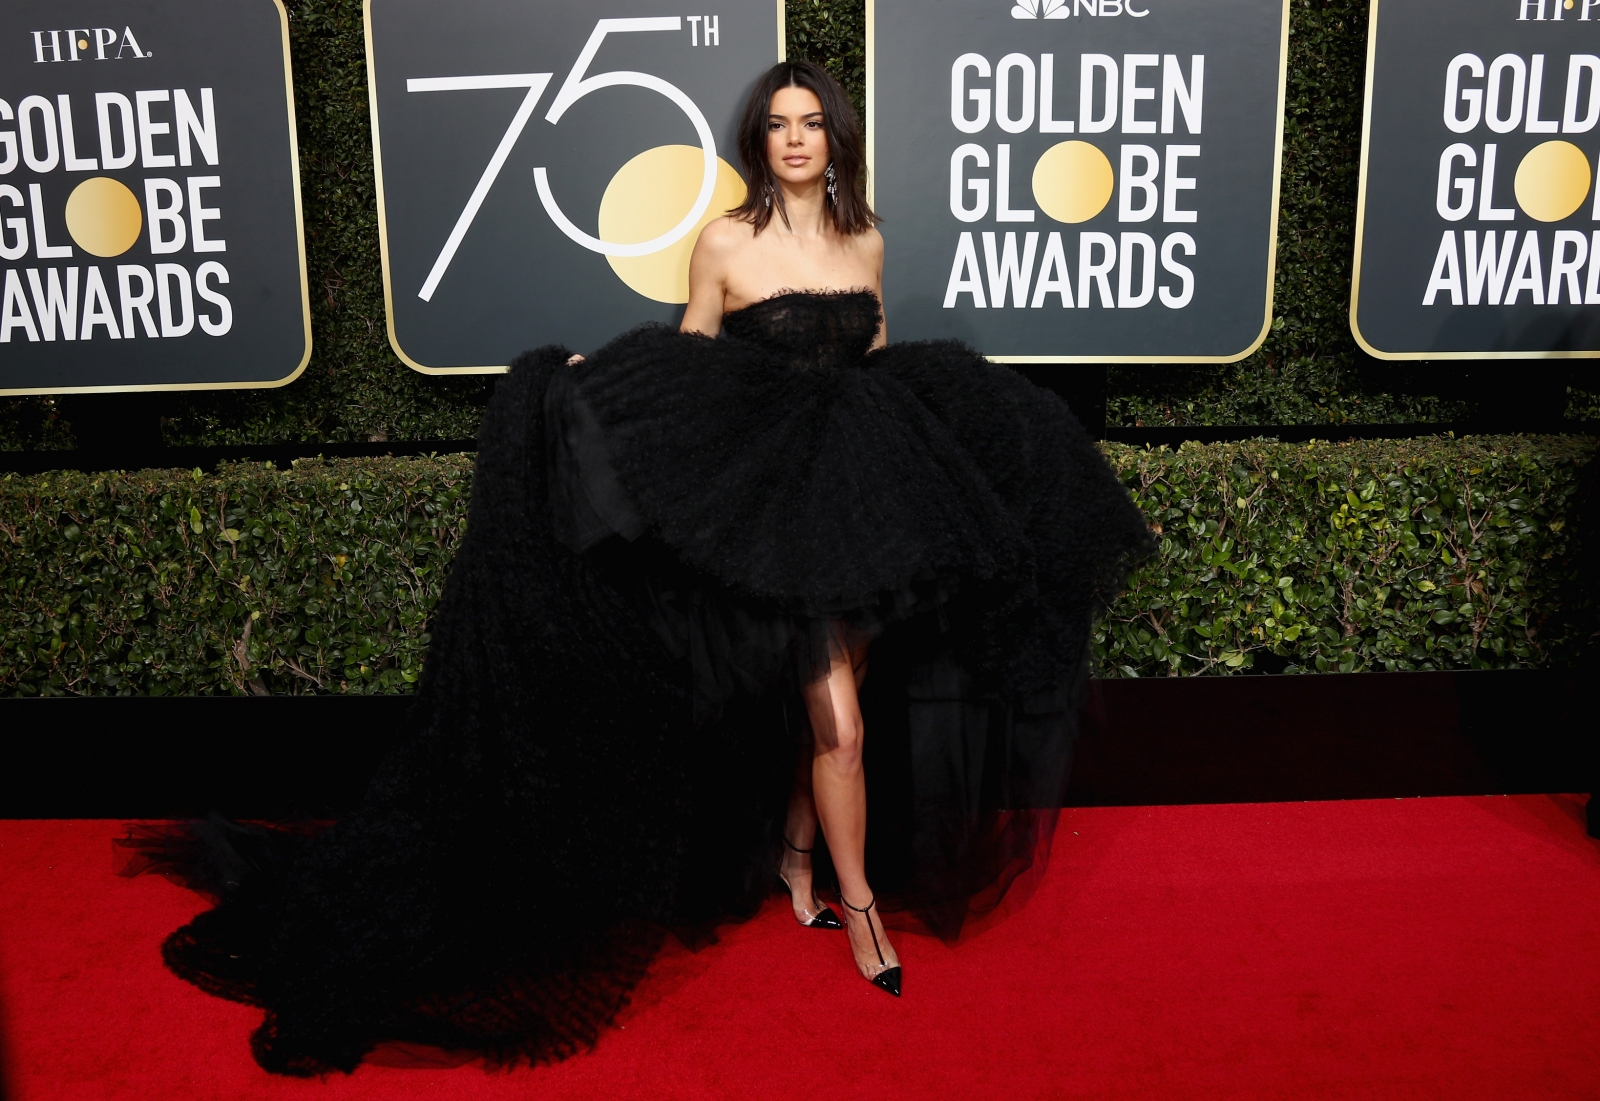 Kendall Jenner ripped on social media for attending the Golden Globes